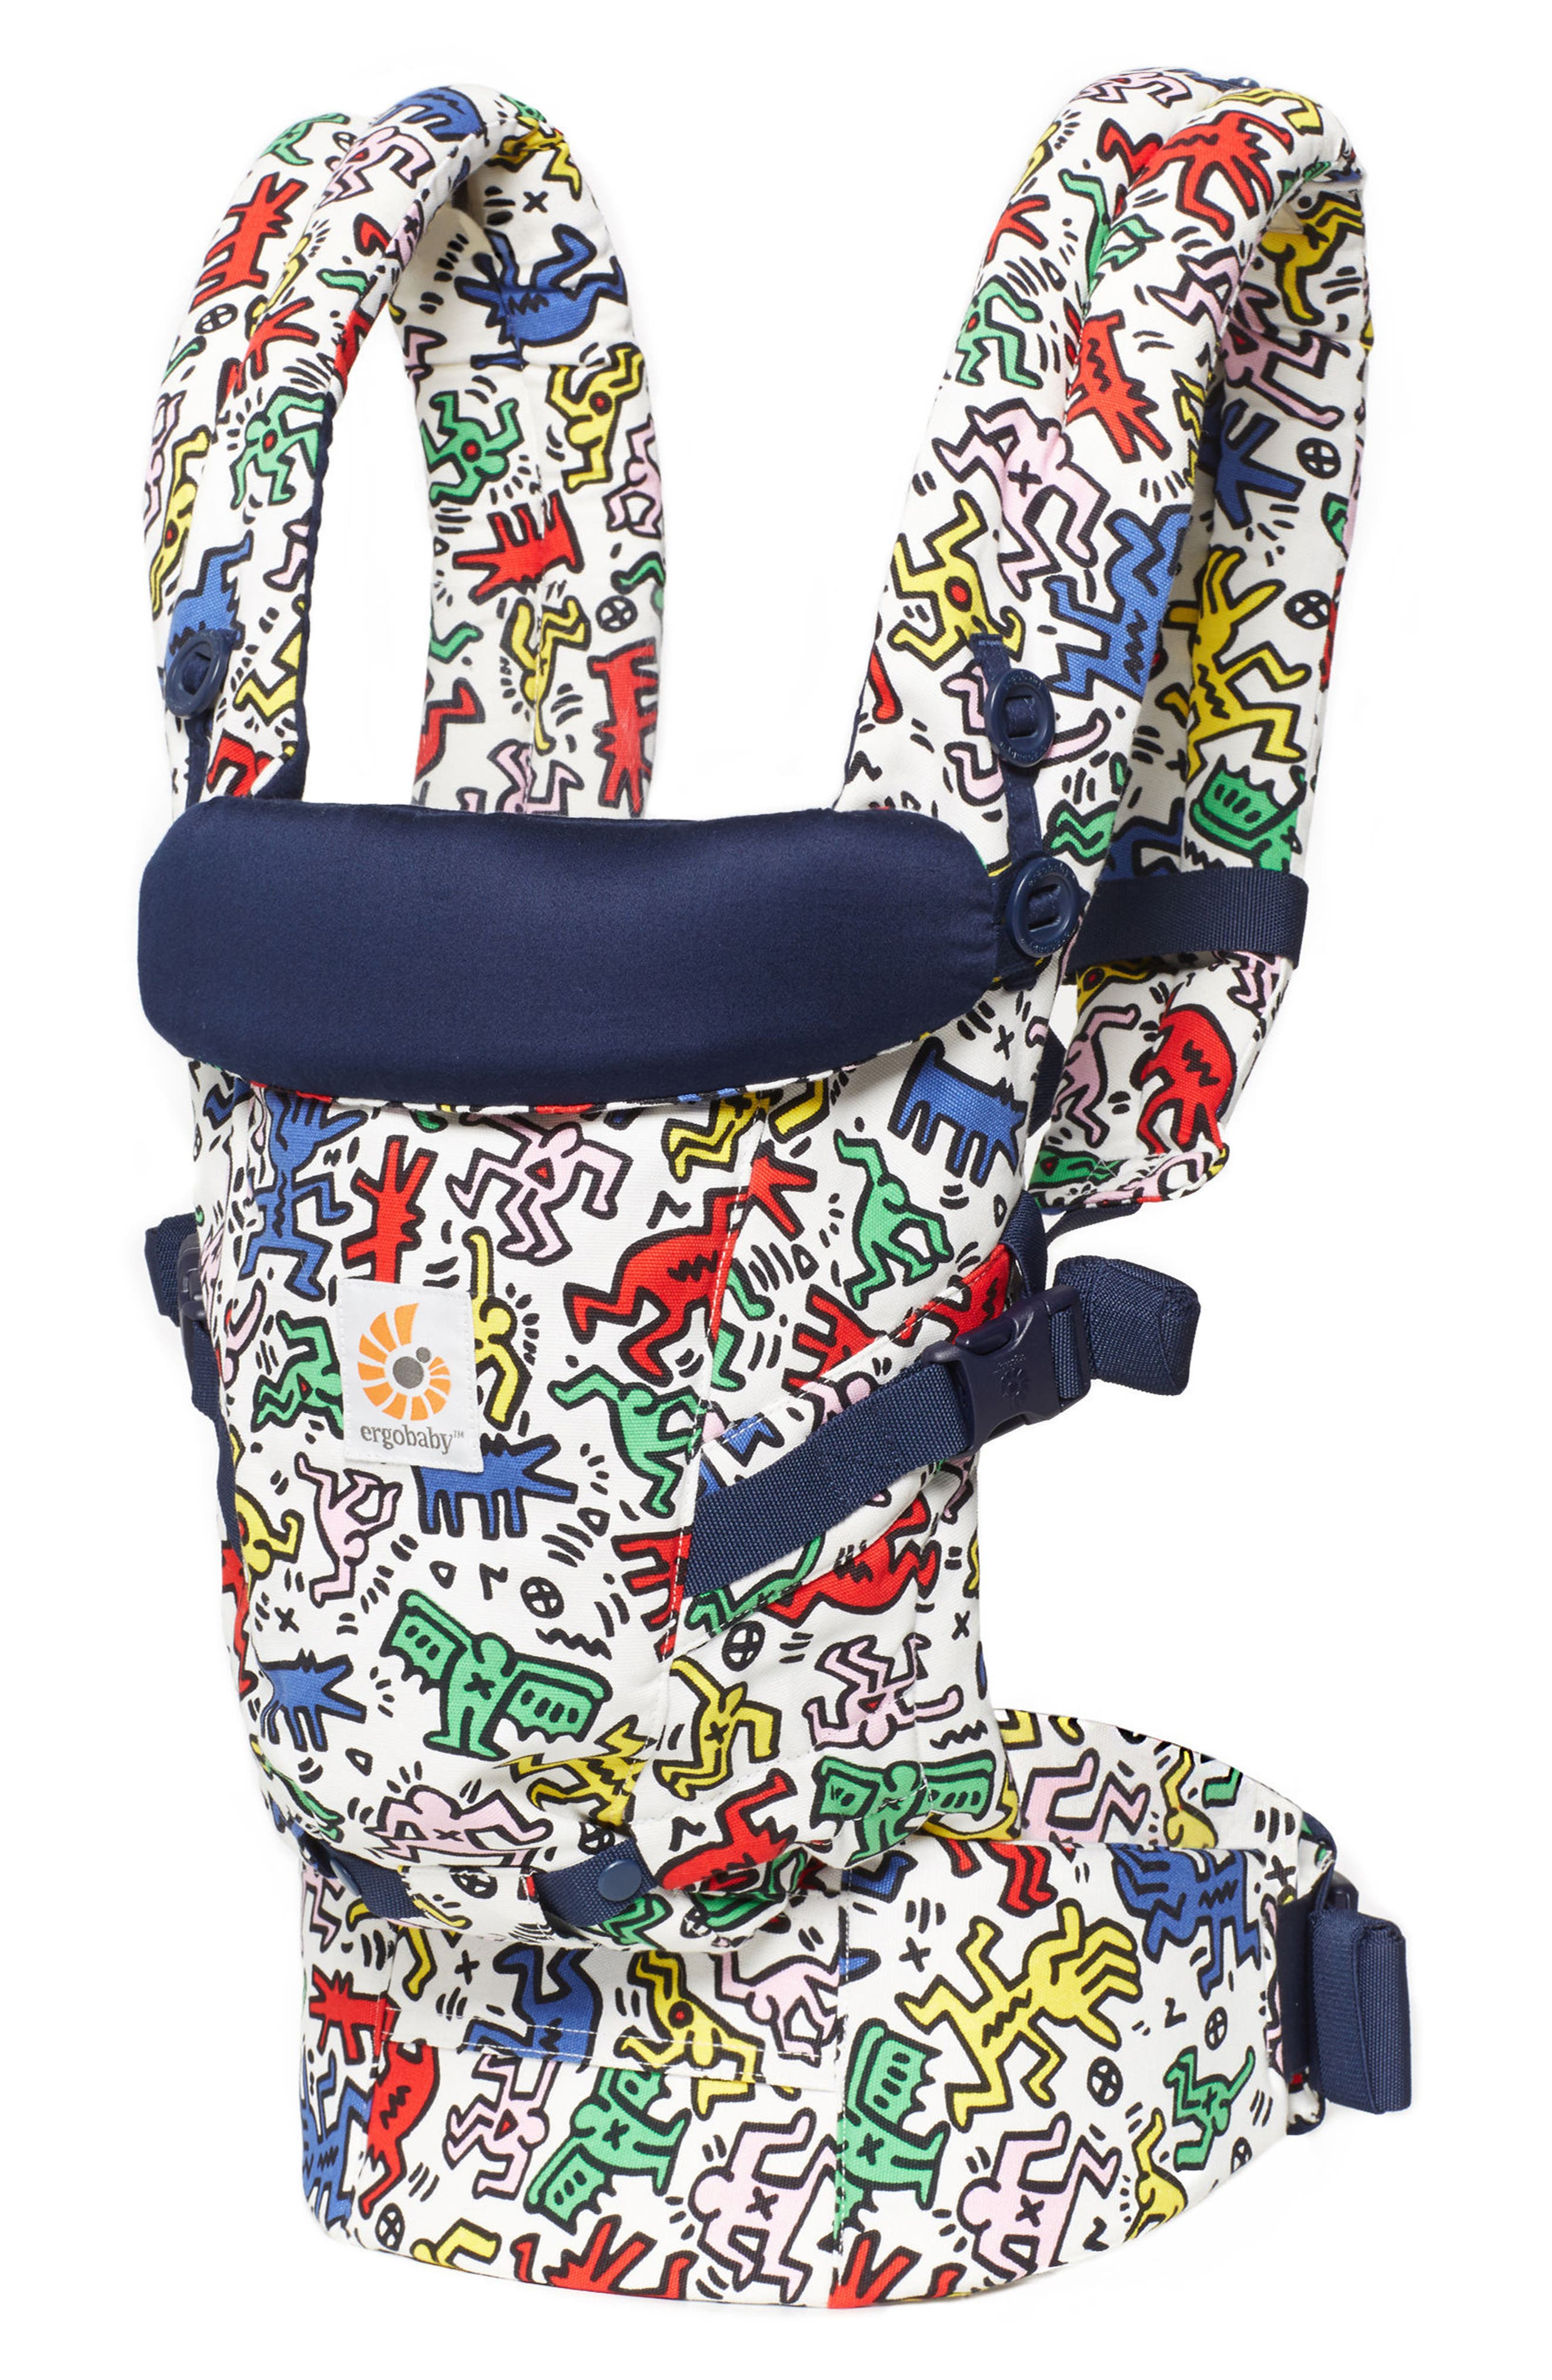 Special Edition Keith Haring Three Position ADAPT Baby Carrier,                             Alternate thumbnail 2, color,                             700